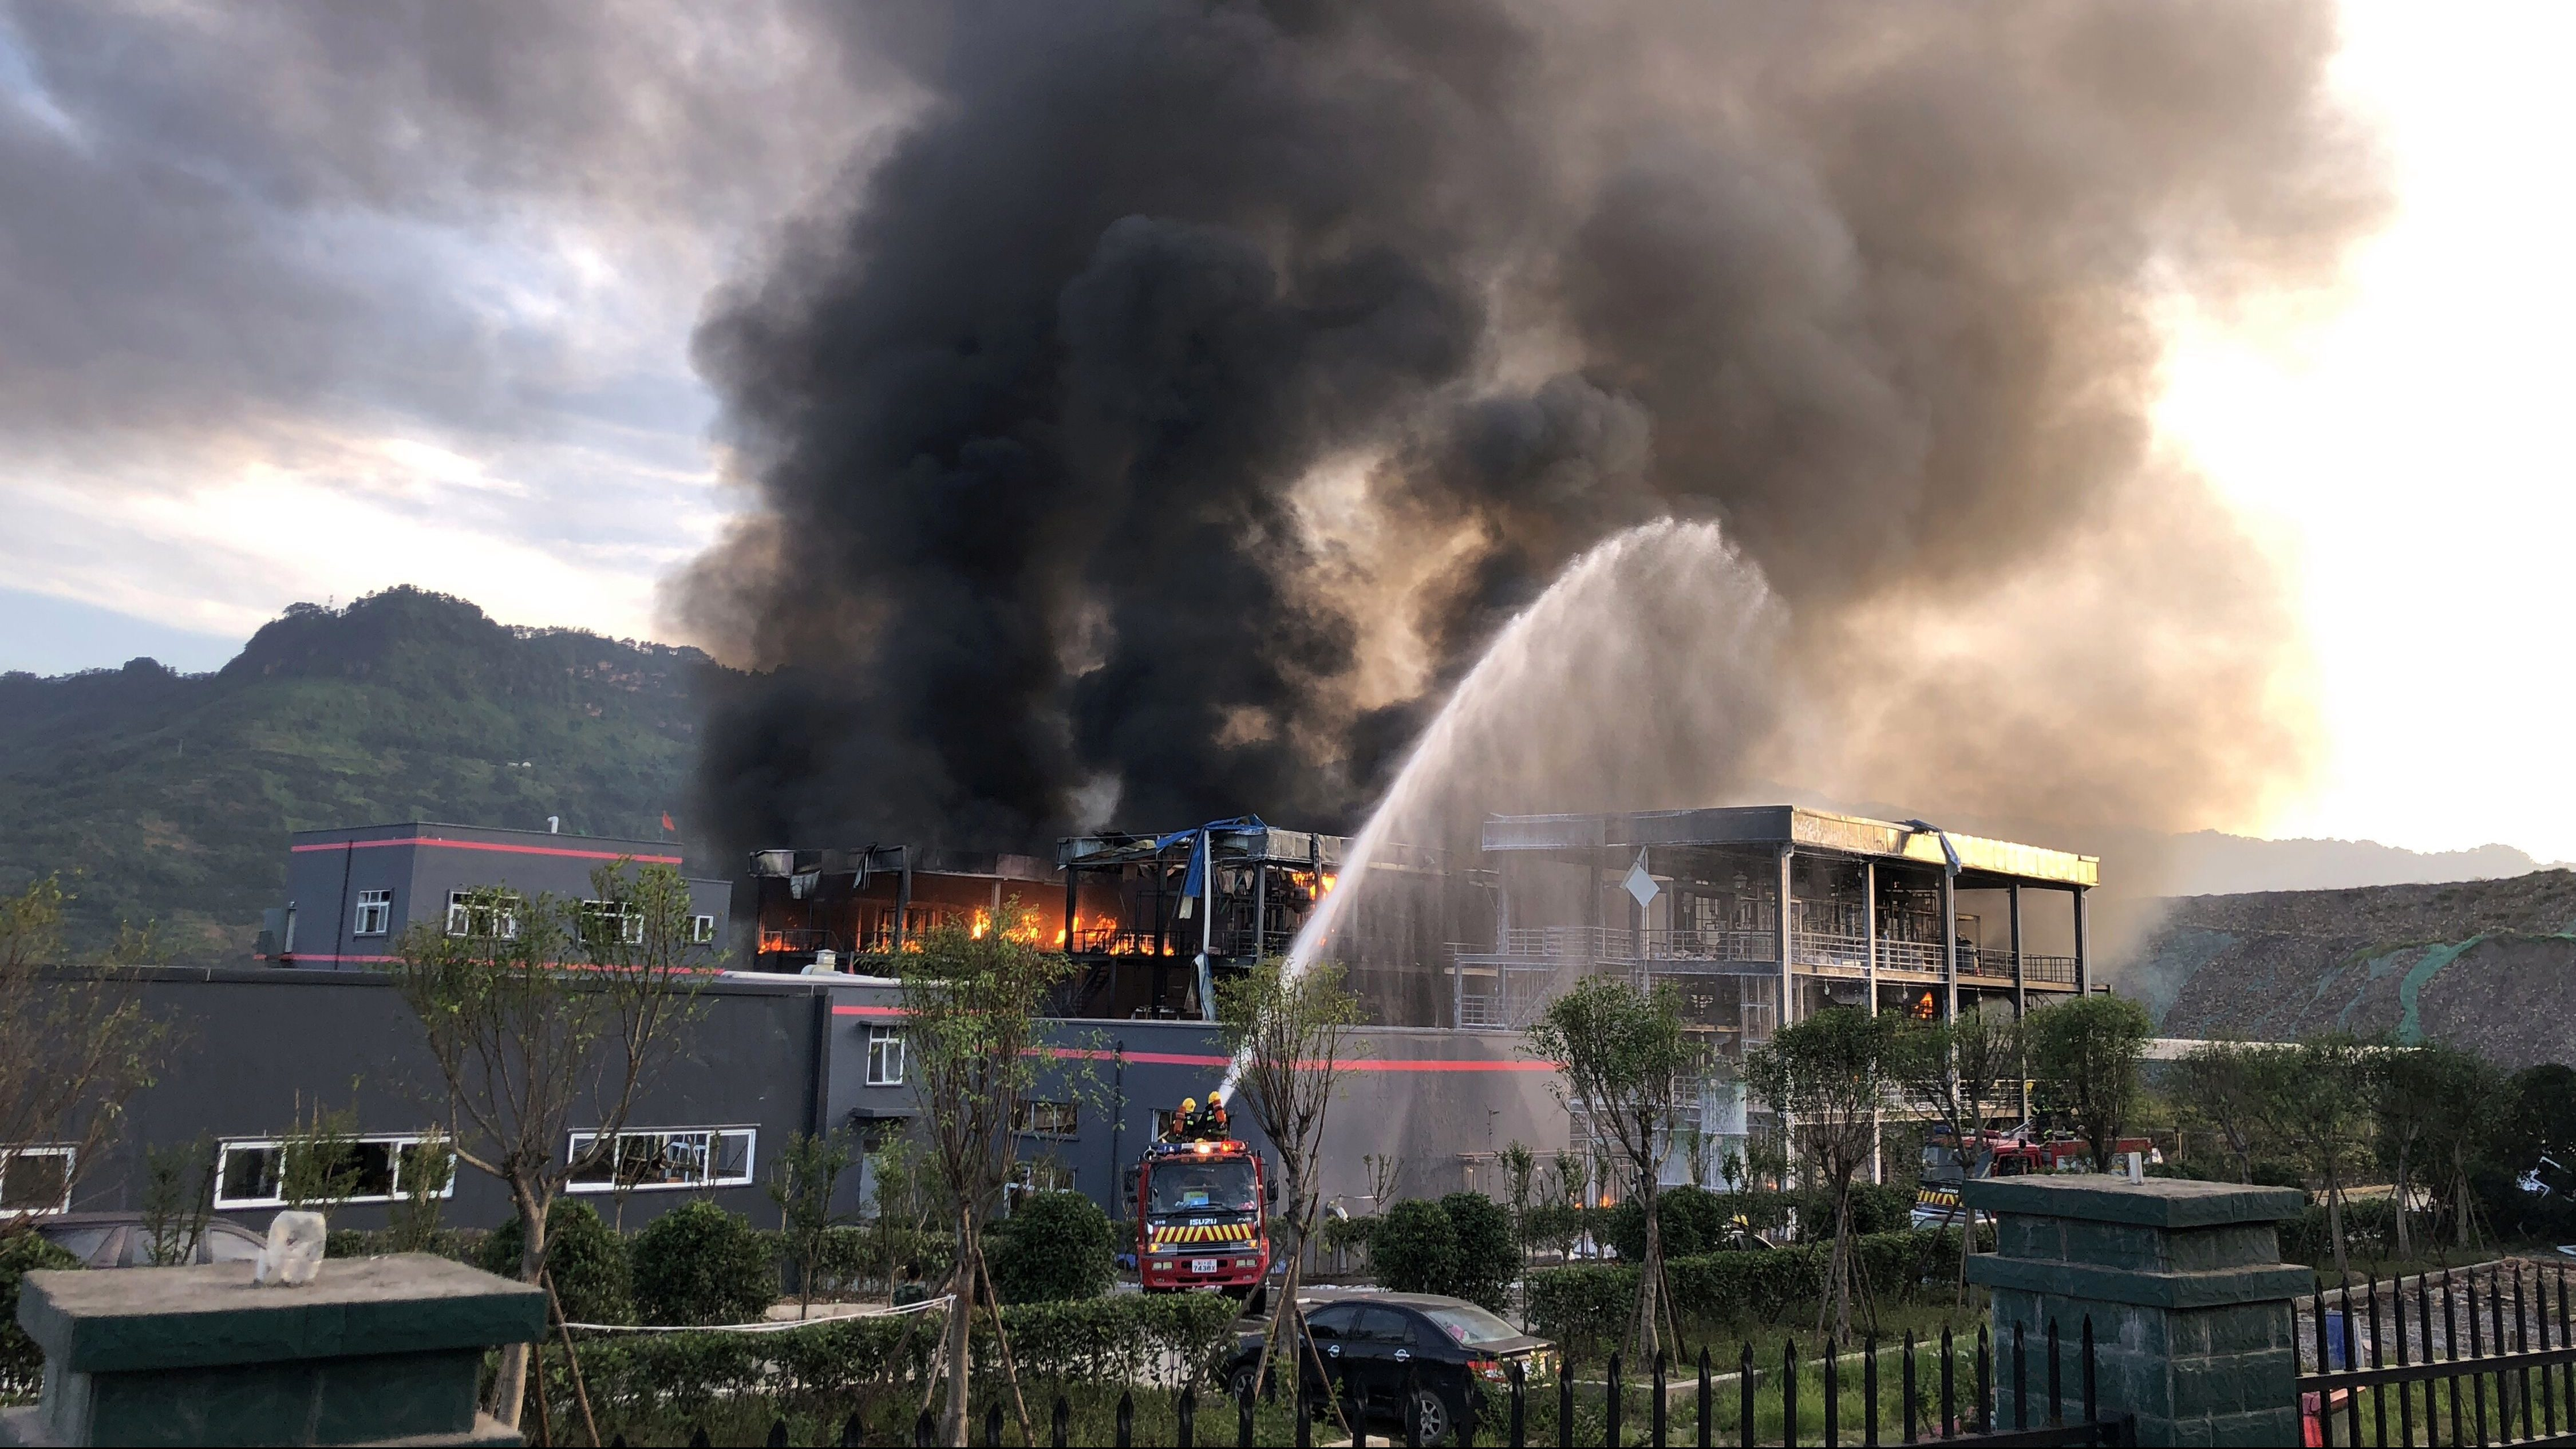 Rescue workers try to put out a fire after an explosion at a chemical plant inside an industrial park in Yibin, Sichuan province, China July 12, 2018.